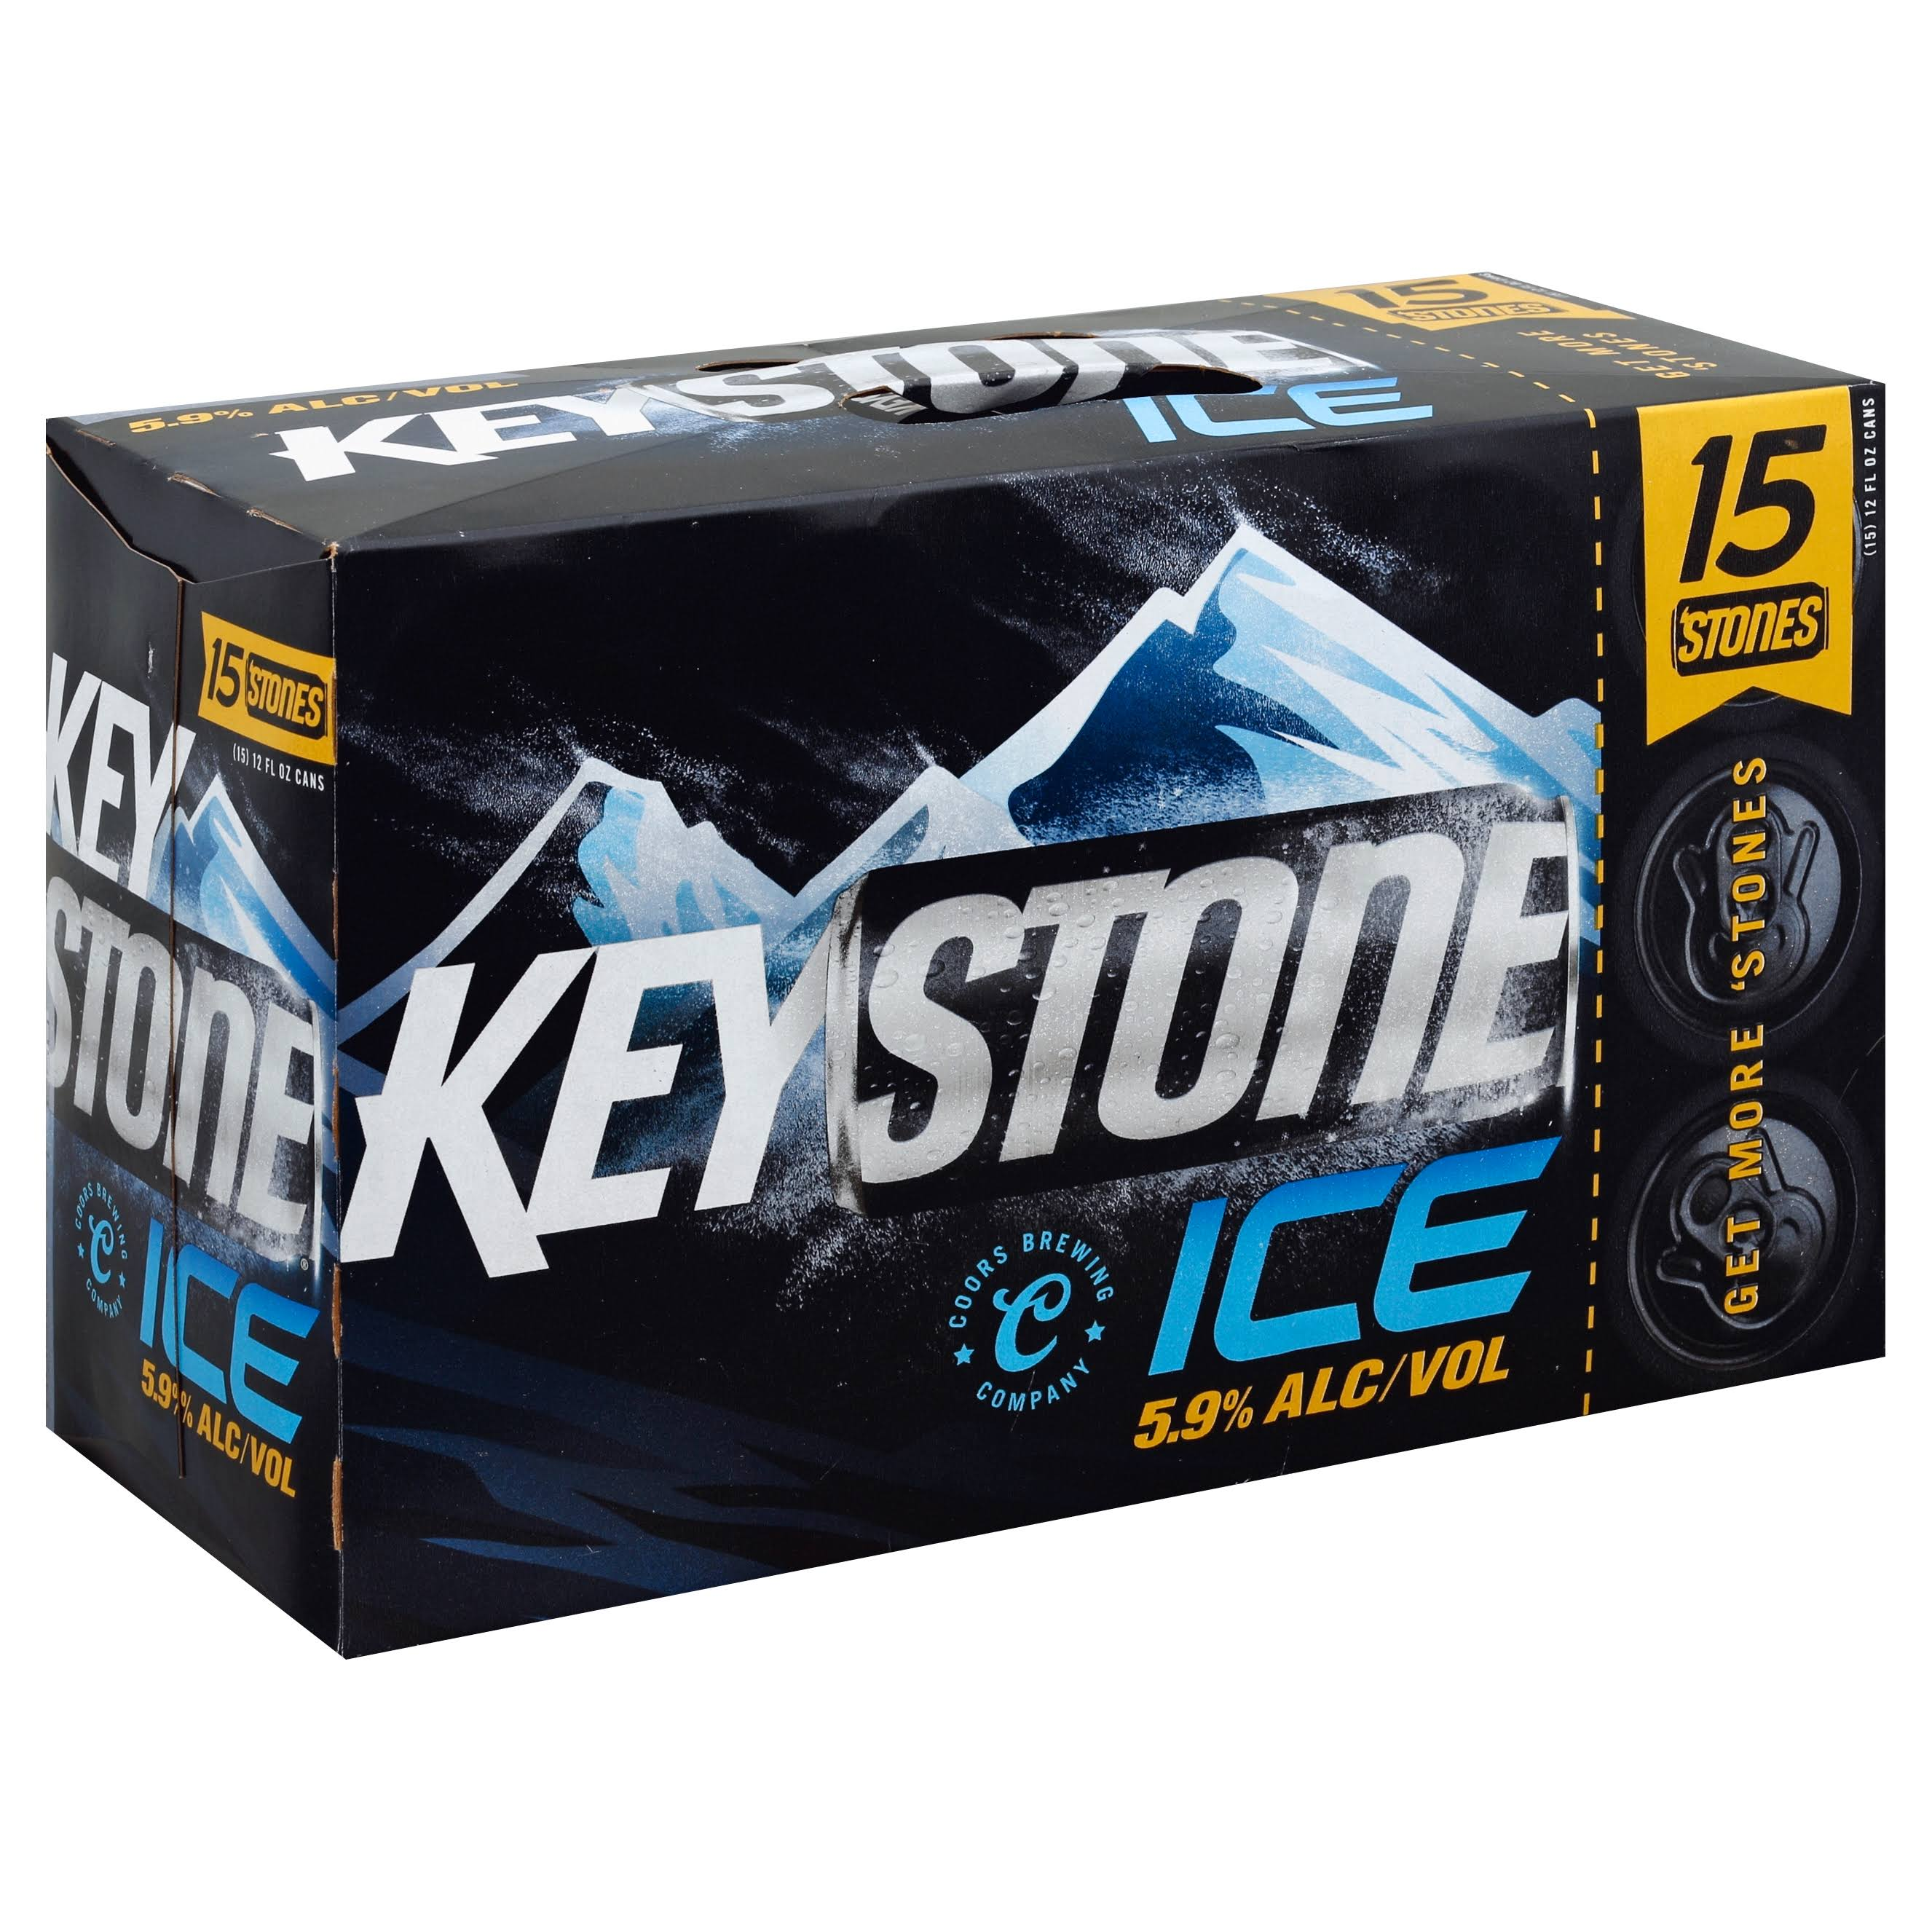 Keystone Ice Beer - 15 pack, 12 fl oz cans